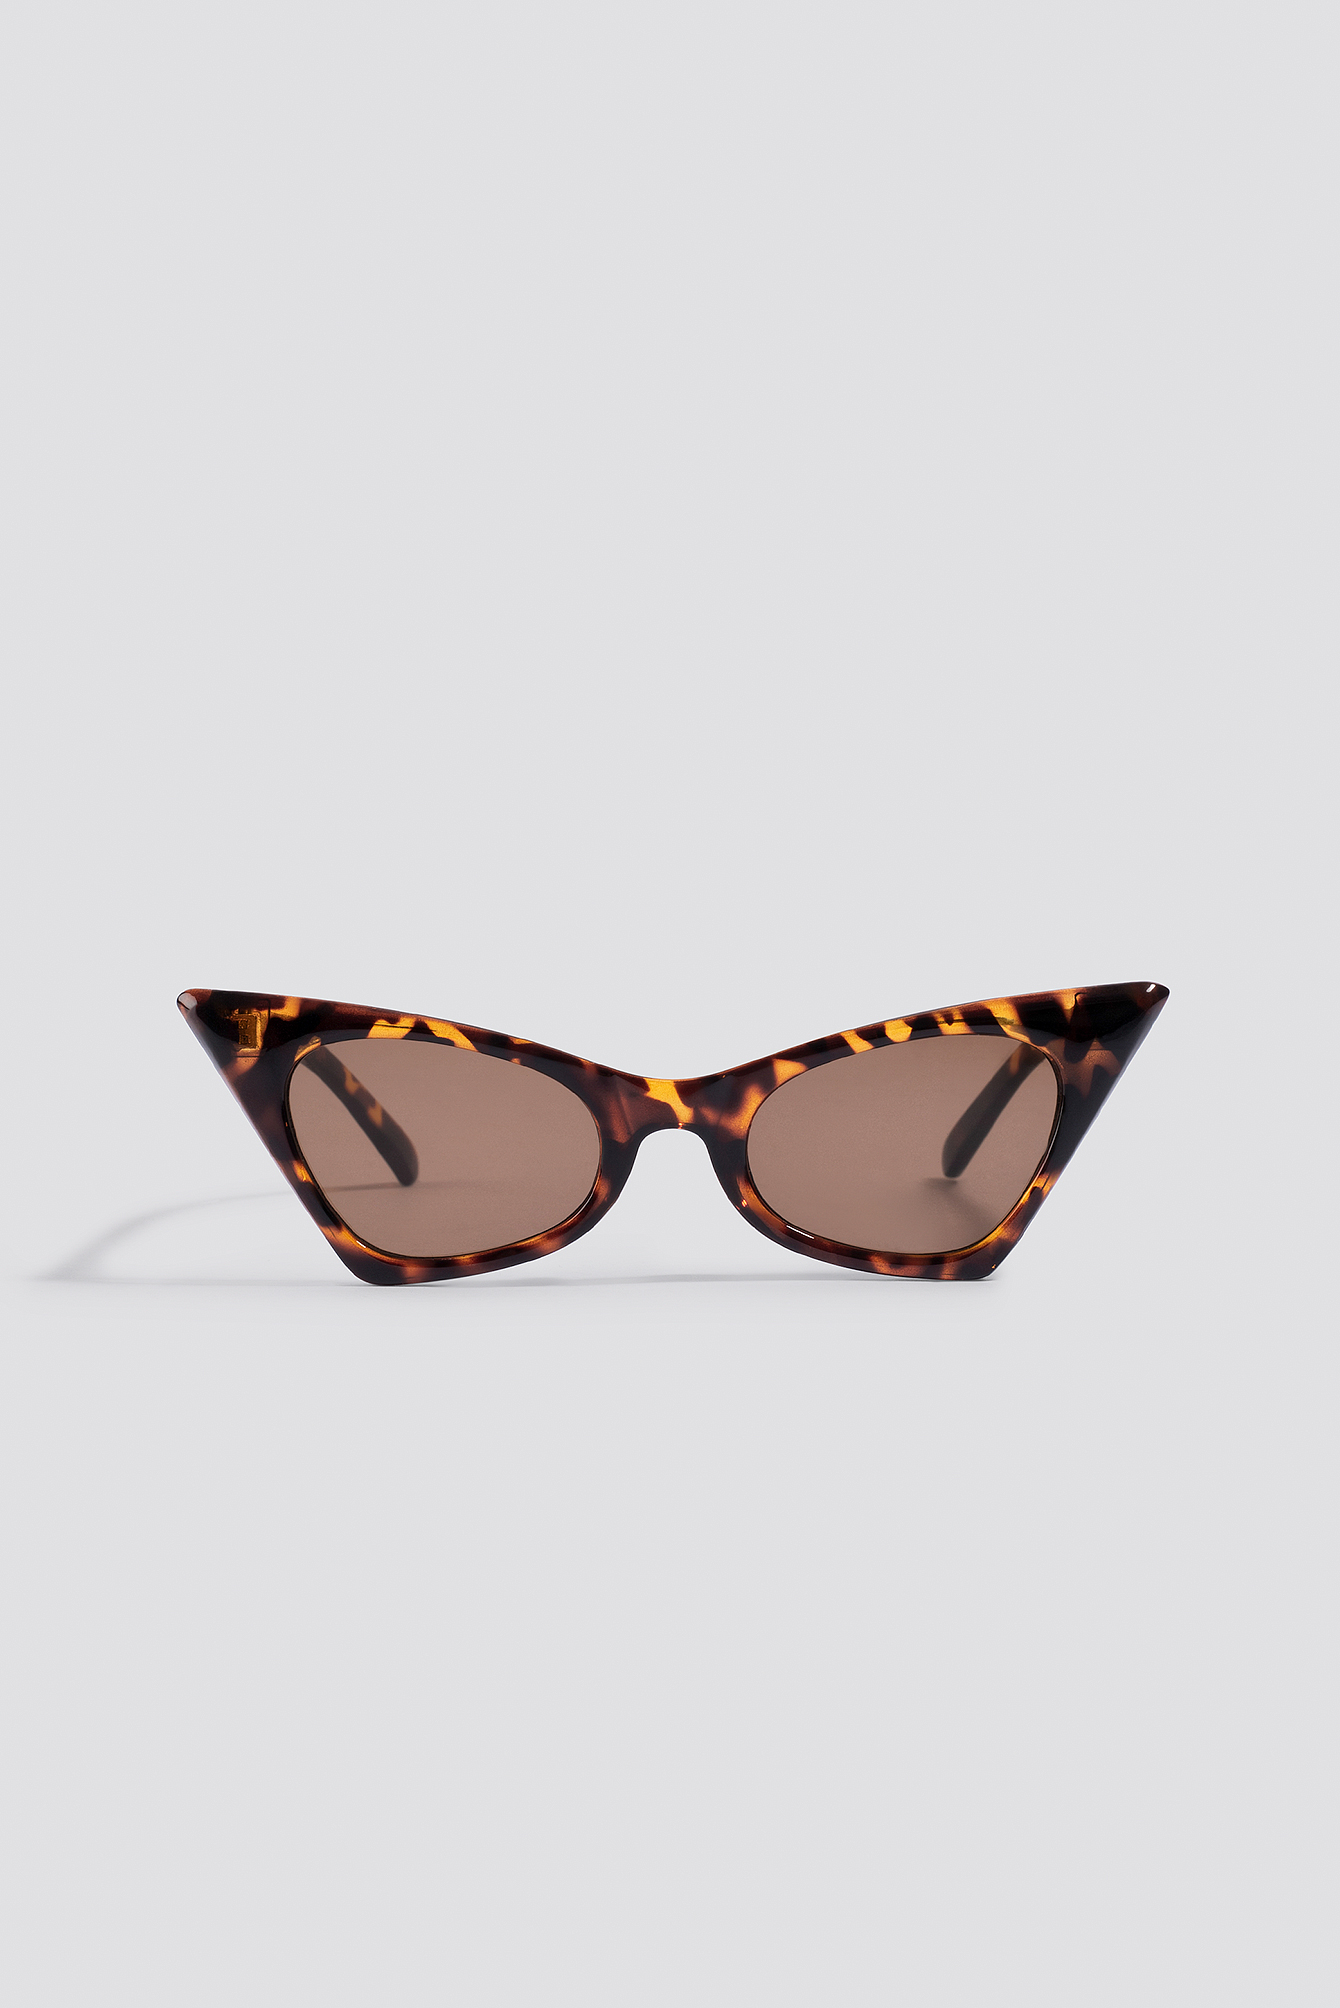 na-kd accessories -  Sharp Top Cat Eye Sunglasses - Brown